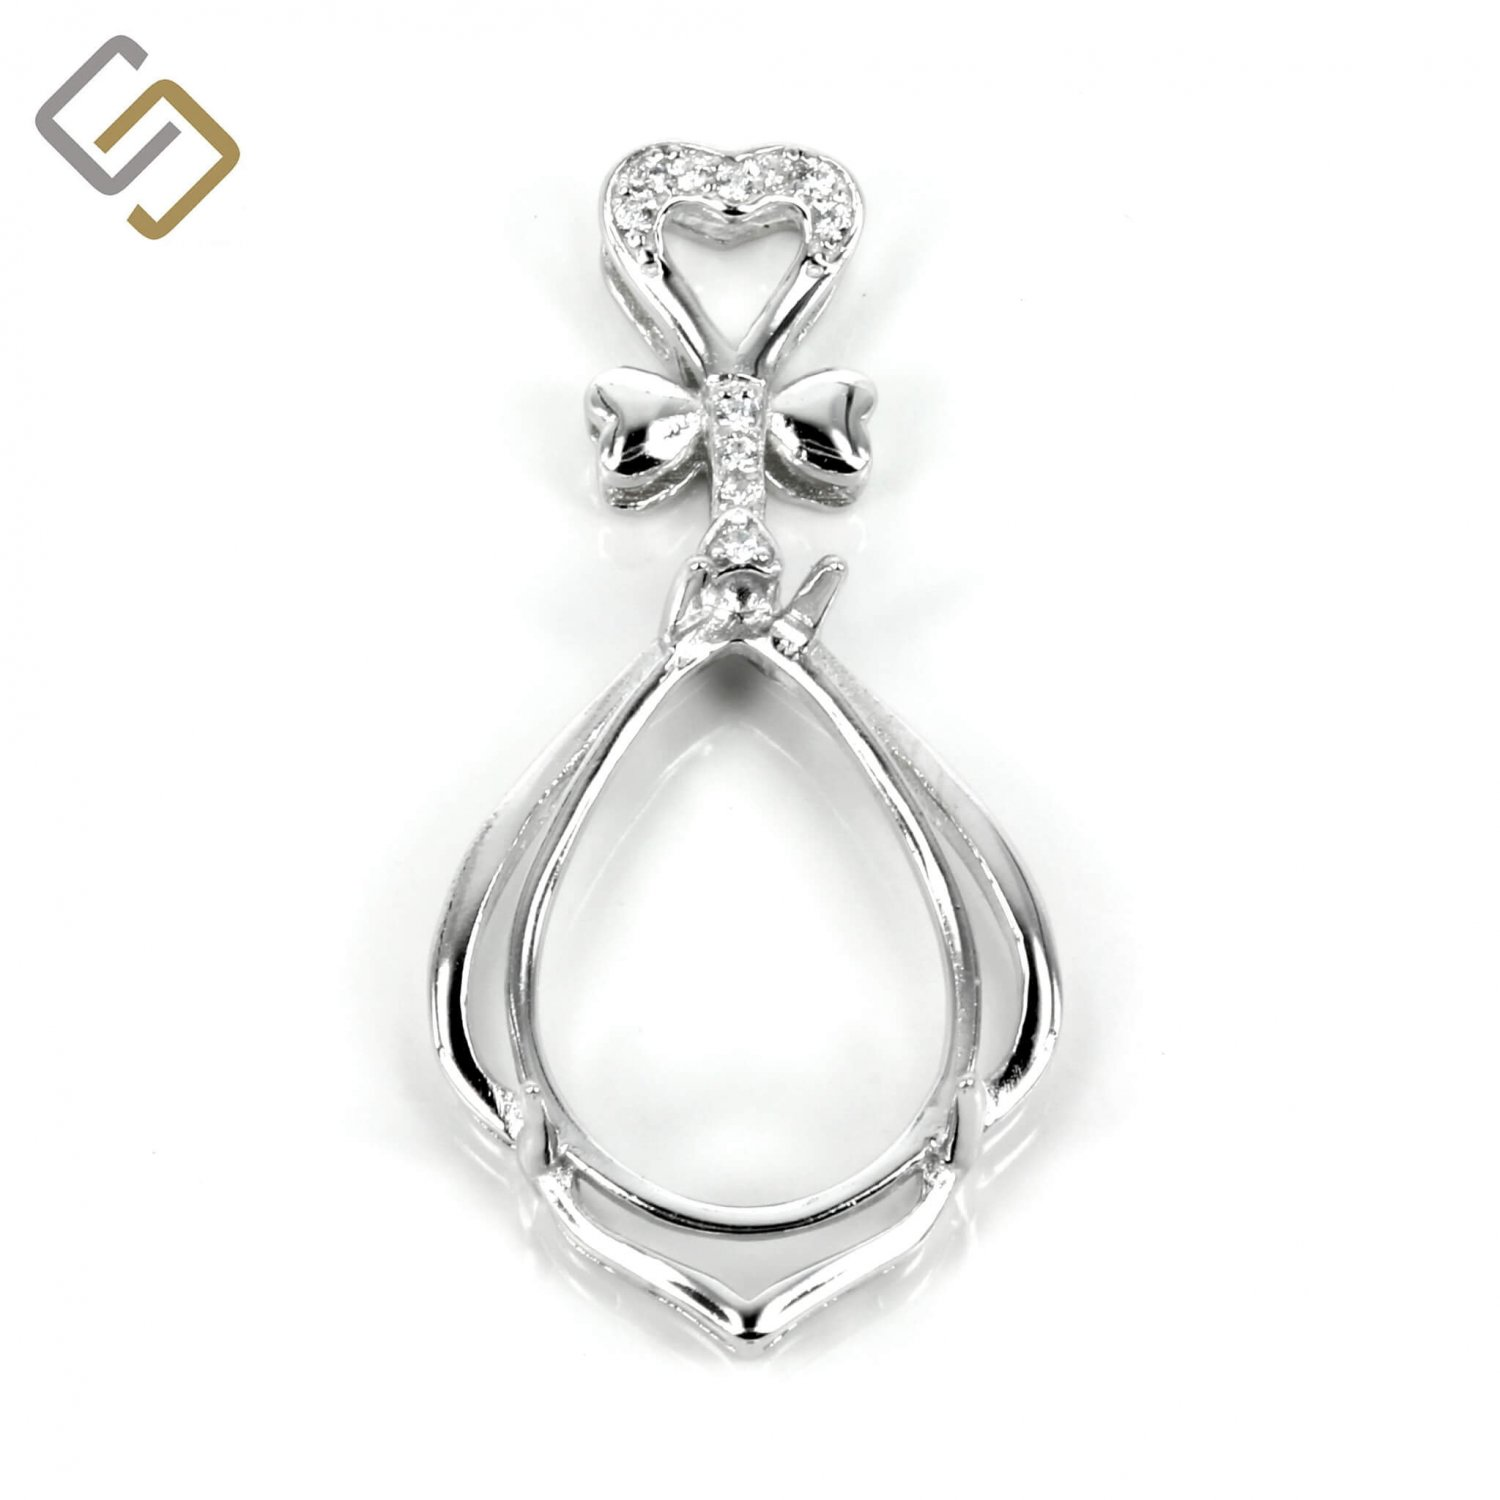 MTP920 Pear shaped pendant in sterling silver for 12x16mm Pear Stones